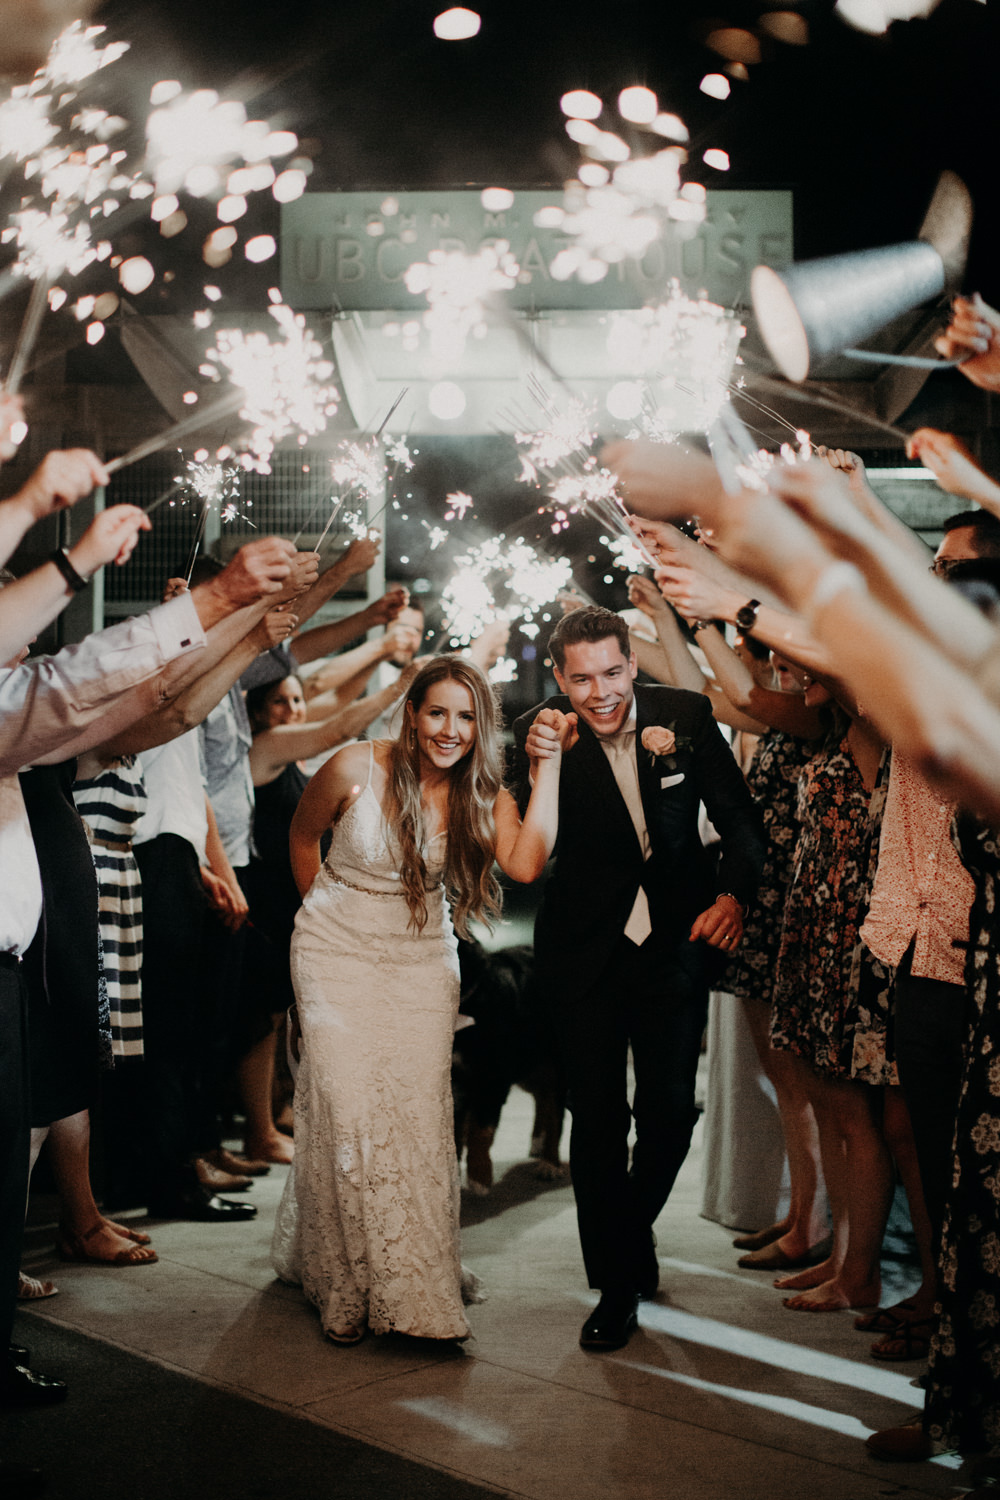 The bride and groom leaving their wedding via a sparkler exit.